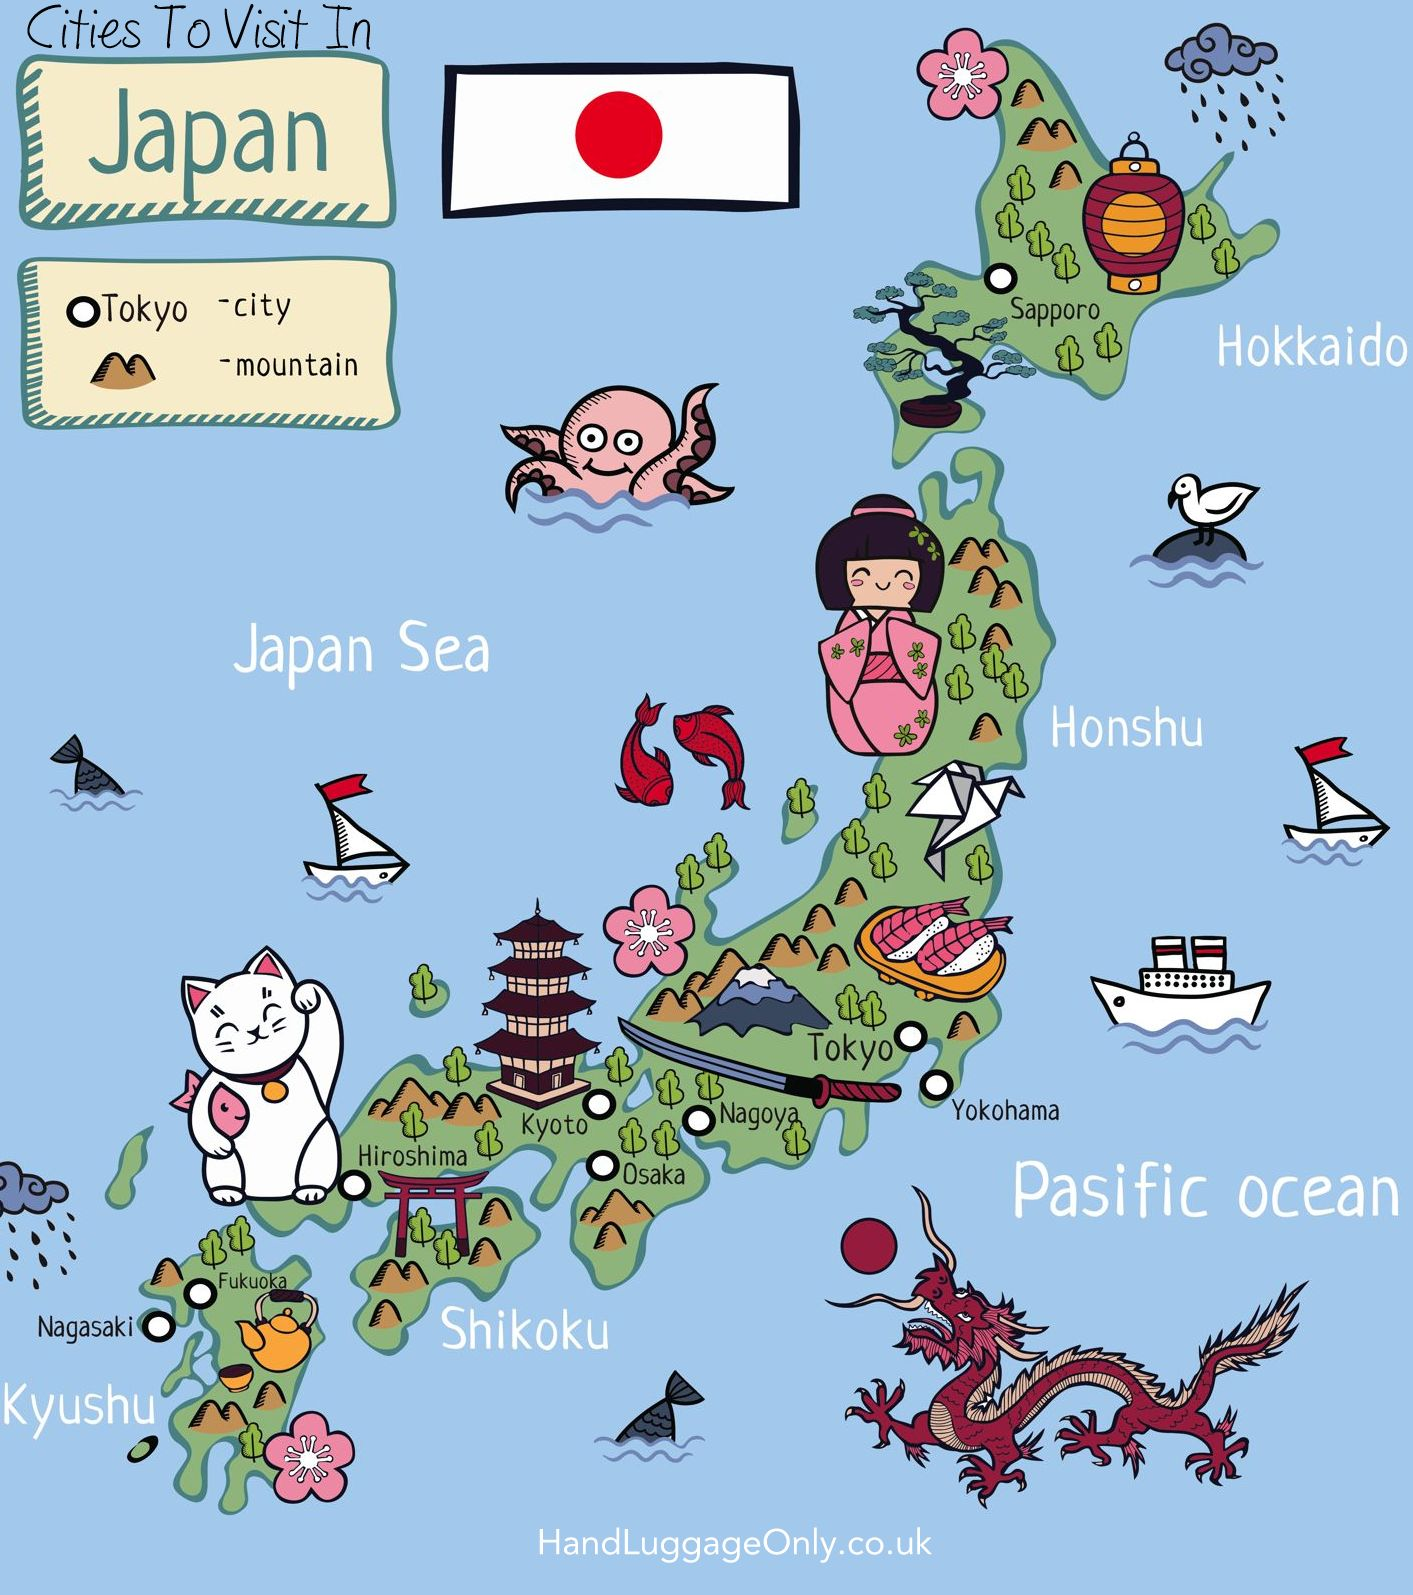 Cities To Visit In Japan